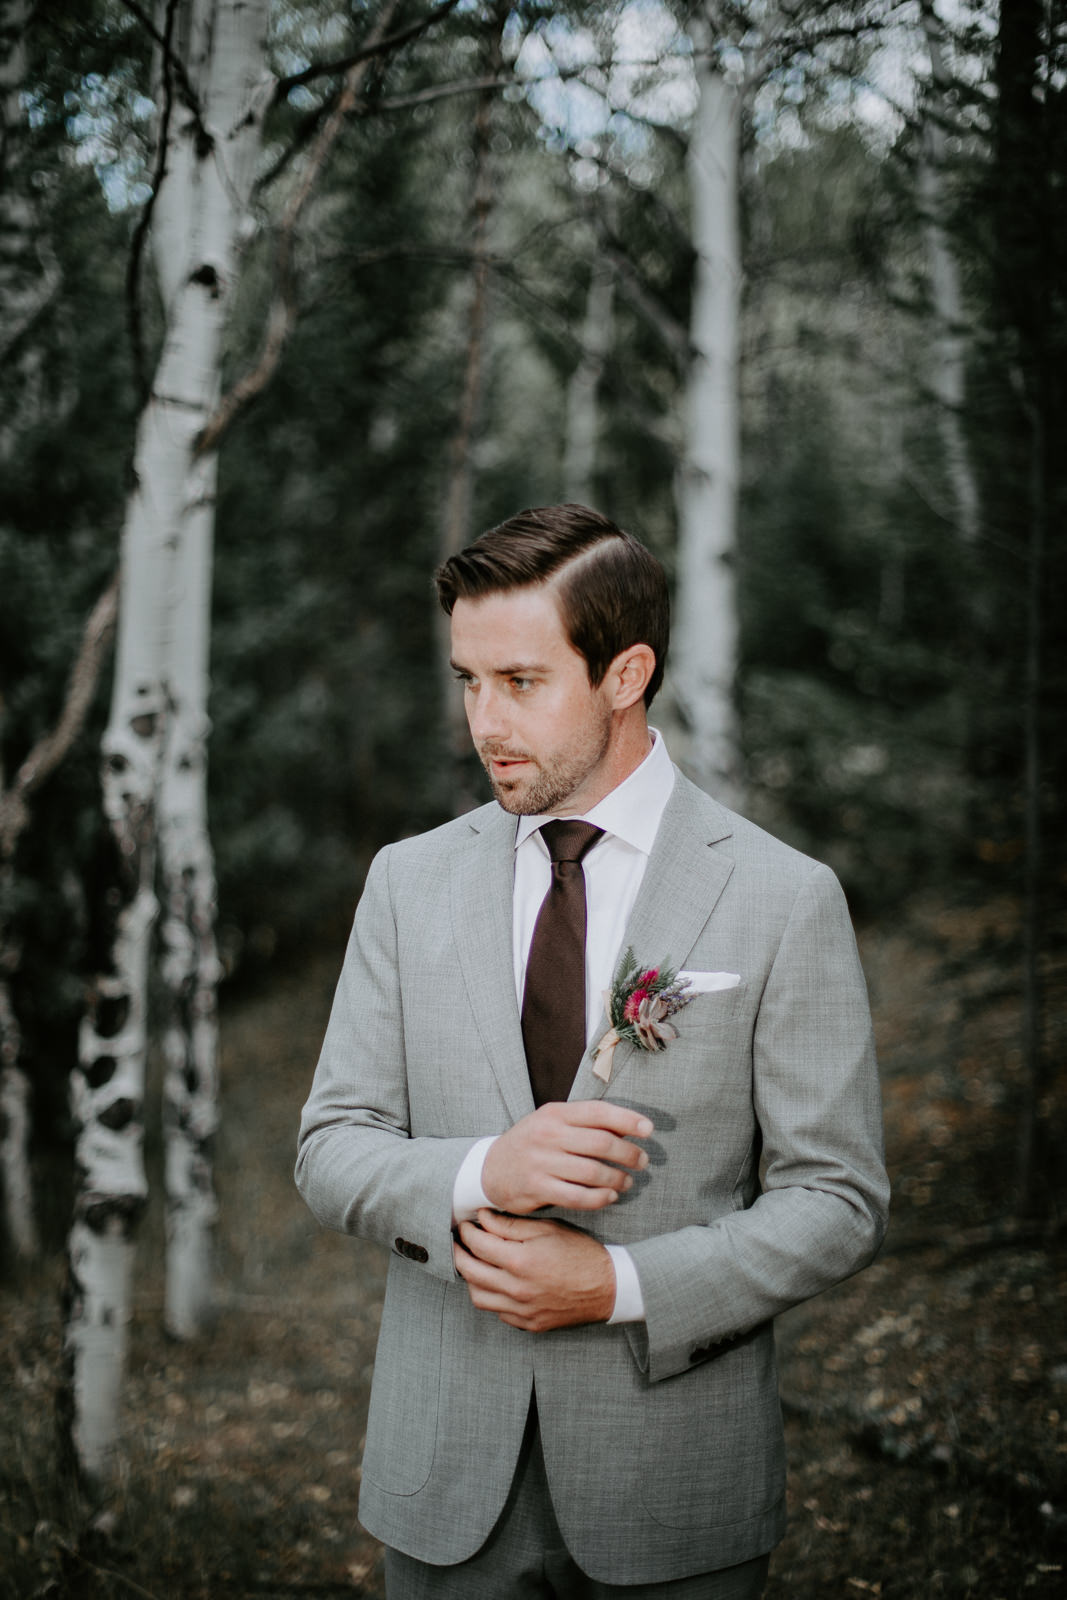 Groom in gray suit fixing cuffs among aspen trees waiting for his bride